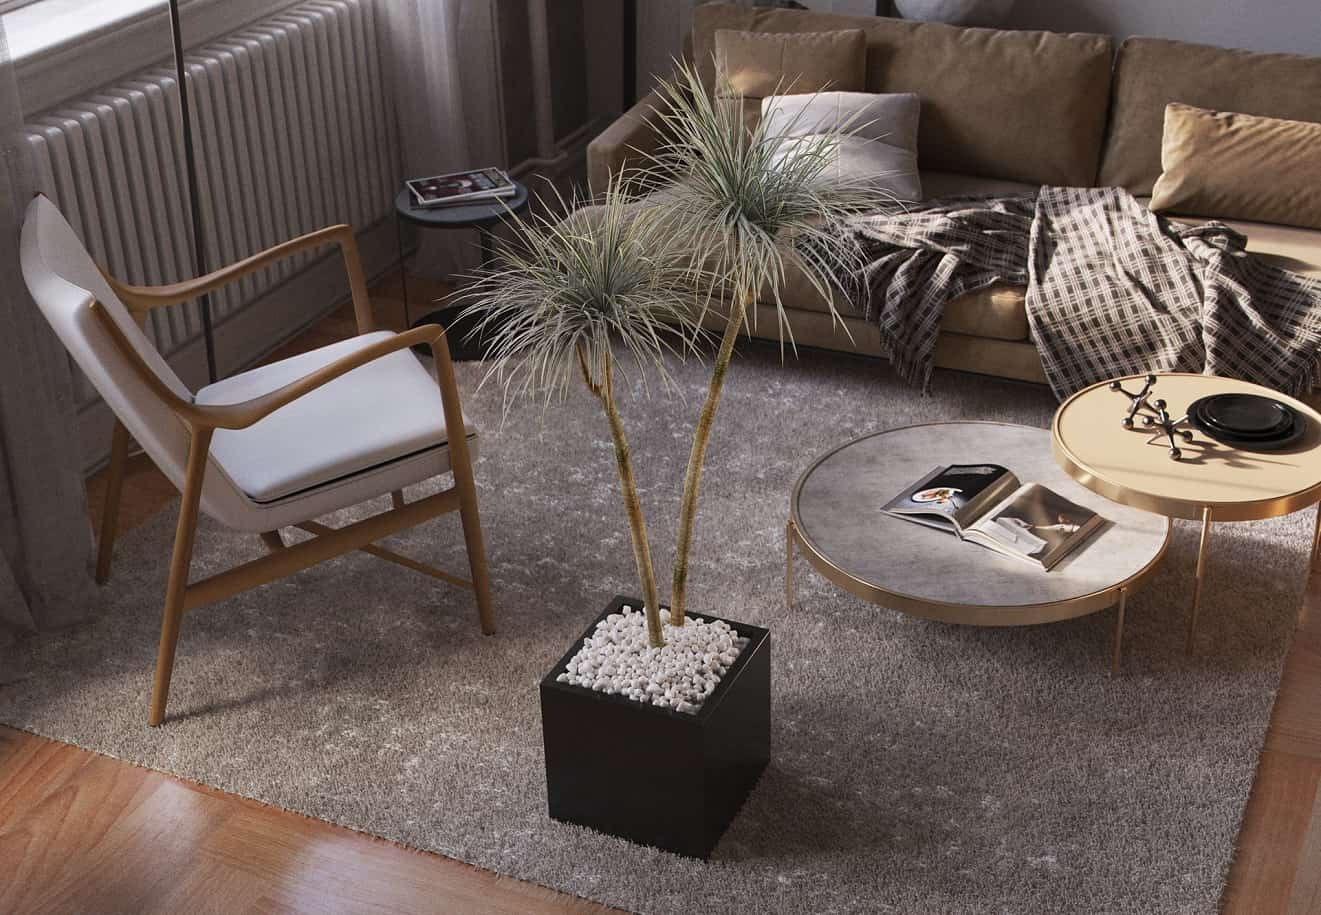 8 Best Large House Plants to Use for Décor. Nice calm Oriental philosophy of the living room with dragon tree in the pot with pebbles